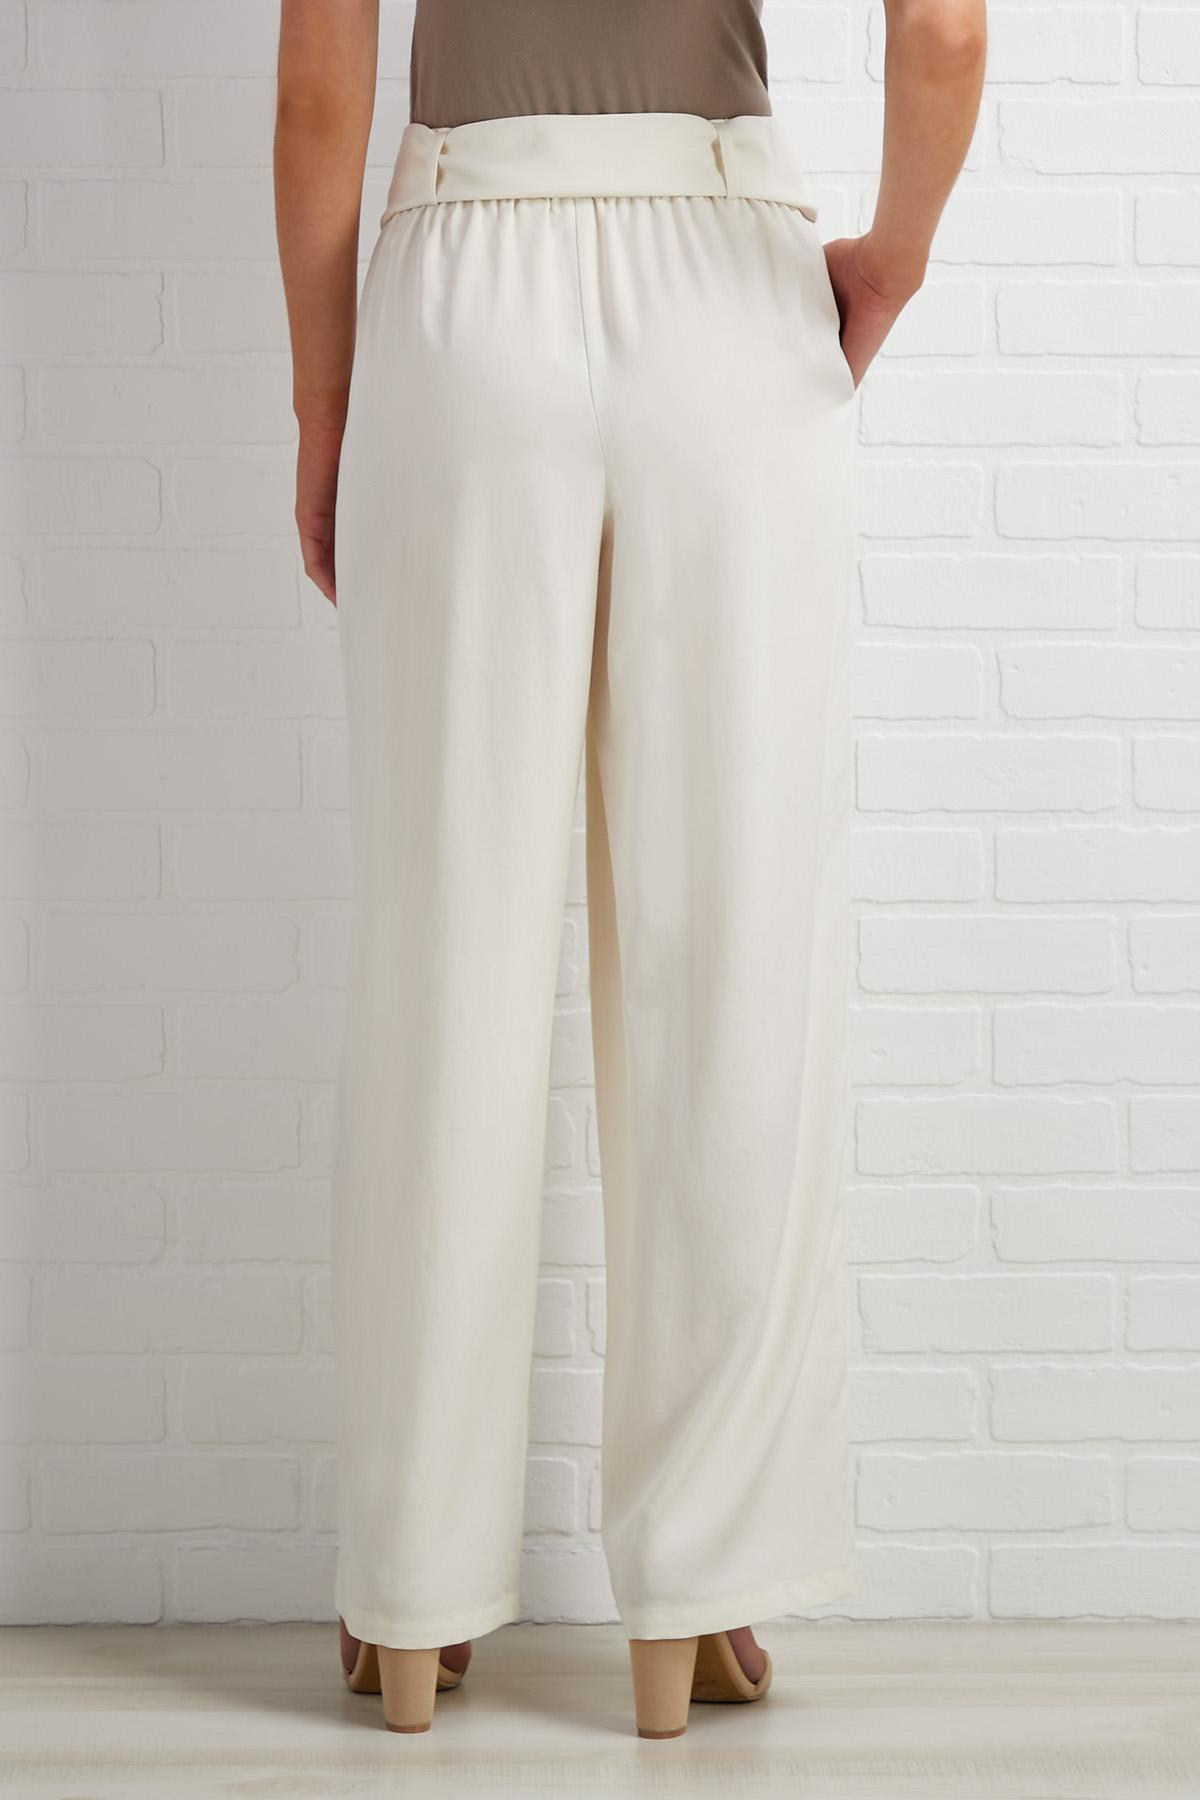 Heart Belted Moment Pants